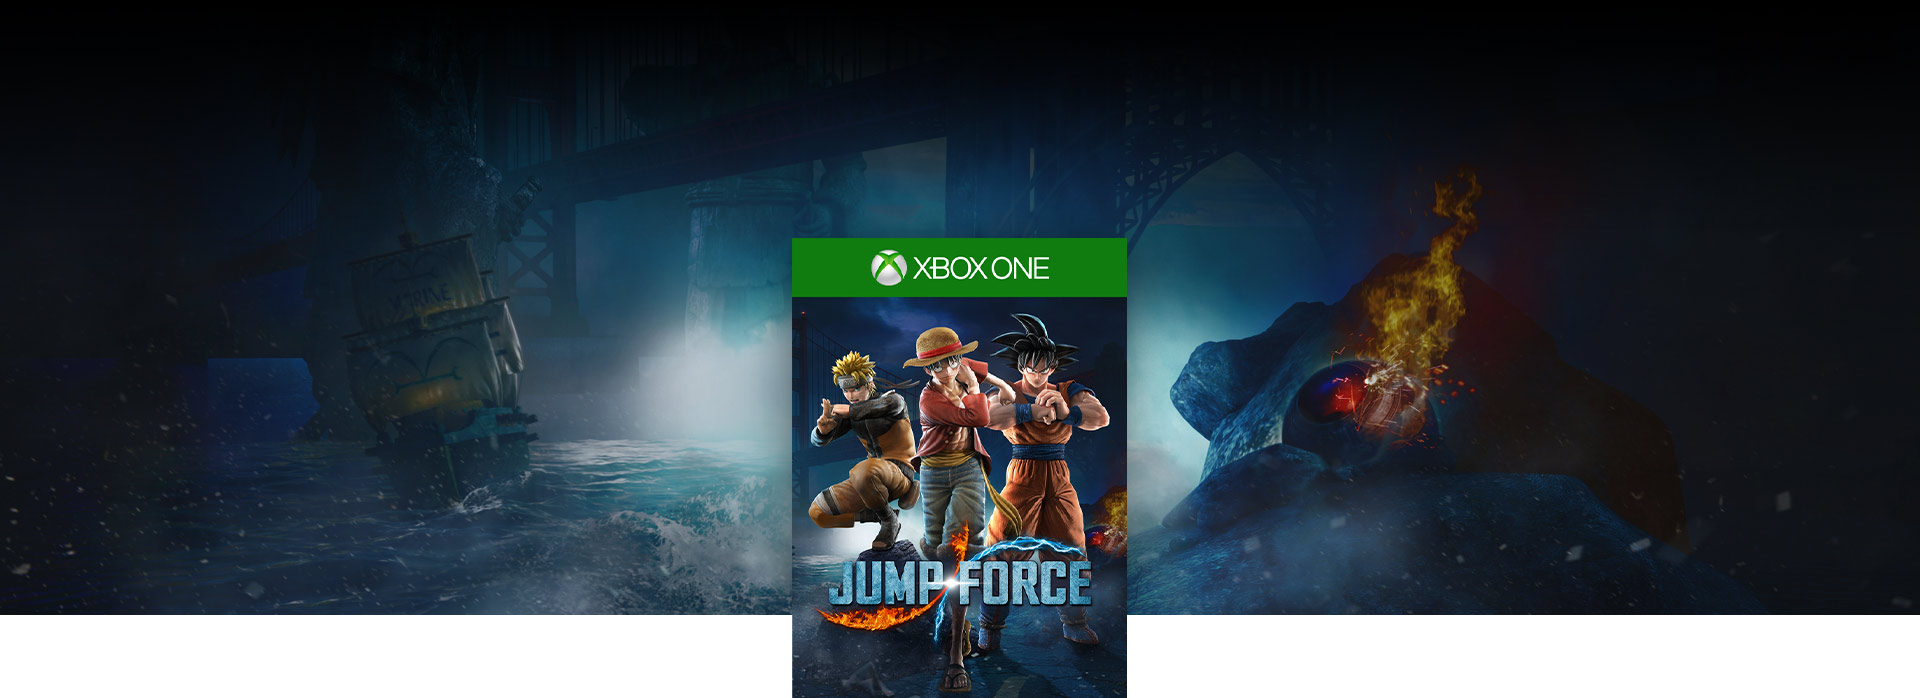 Jump Force-coverbilde, men et mørkt skue av ødeleggelser under Golden Gate-broen